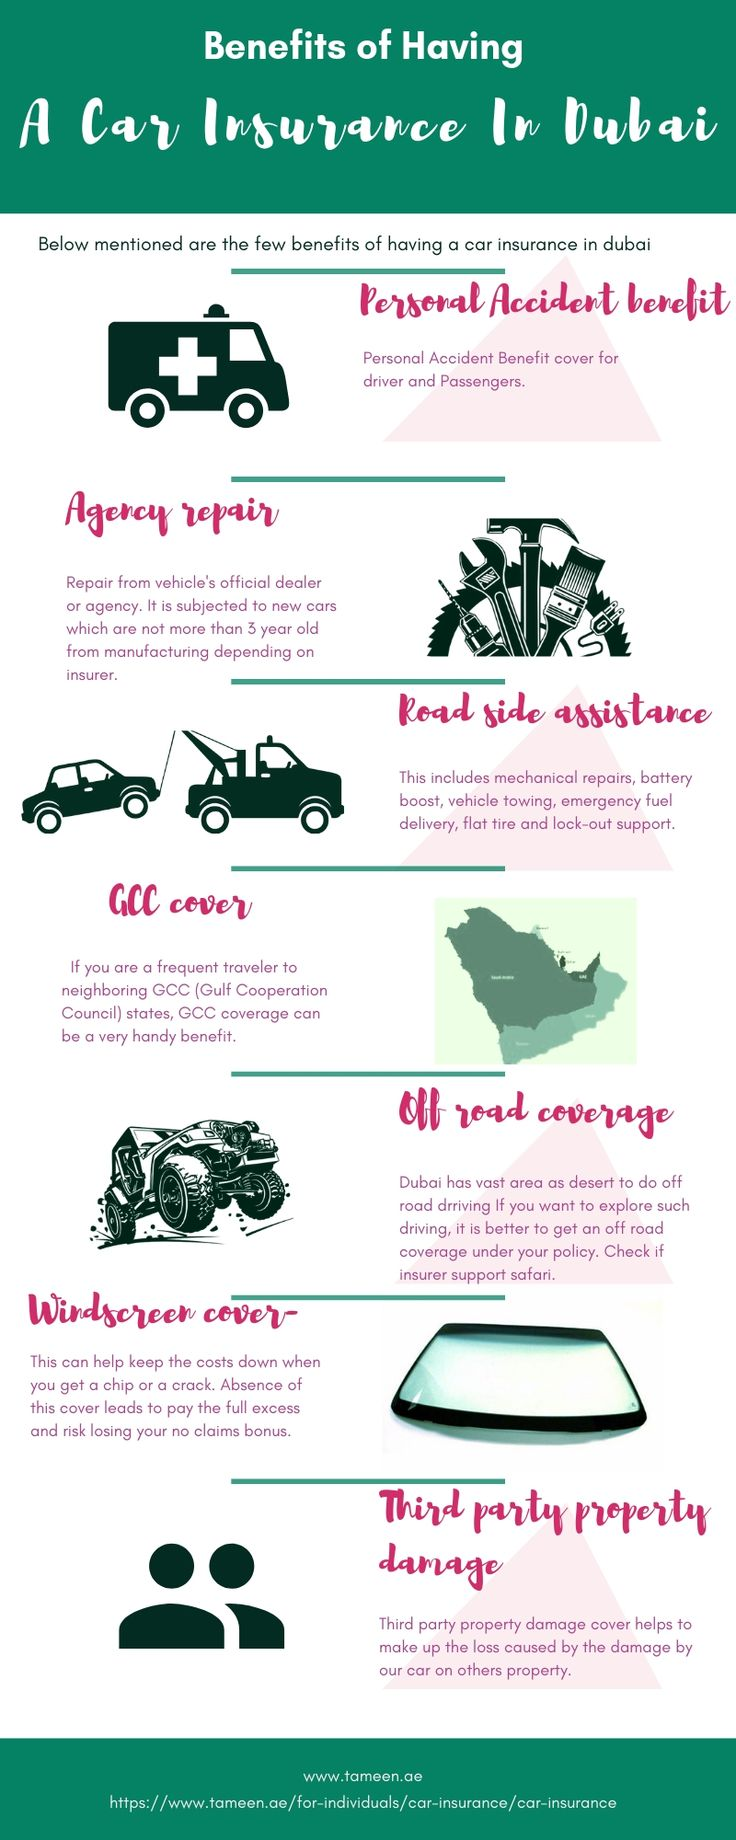 Here are some benefits of haviong a car insurance in Dubai